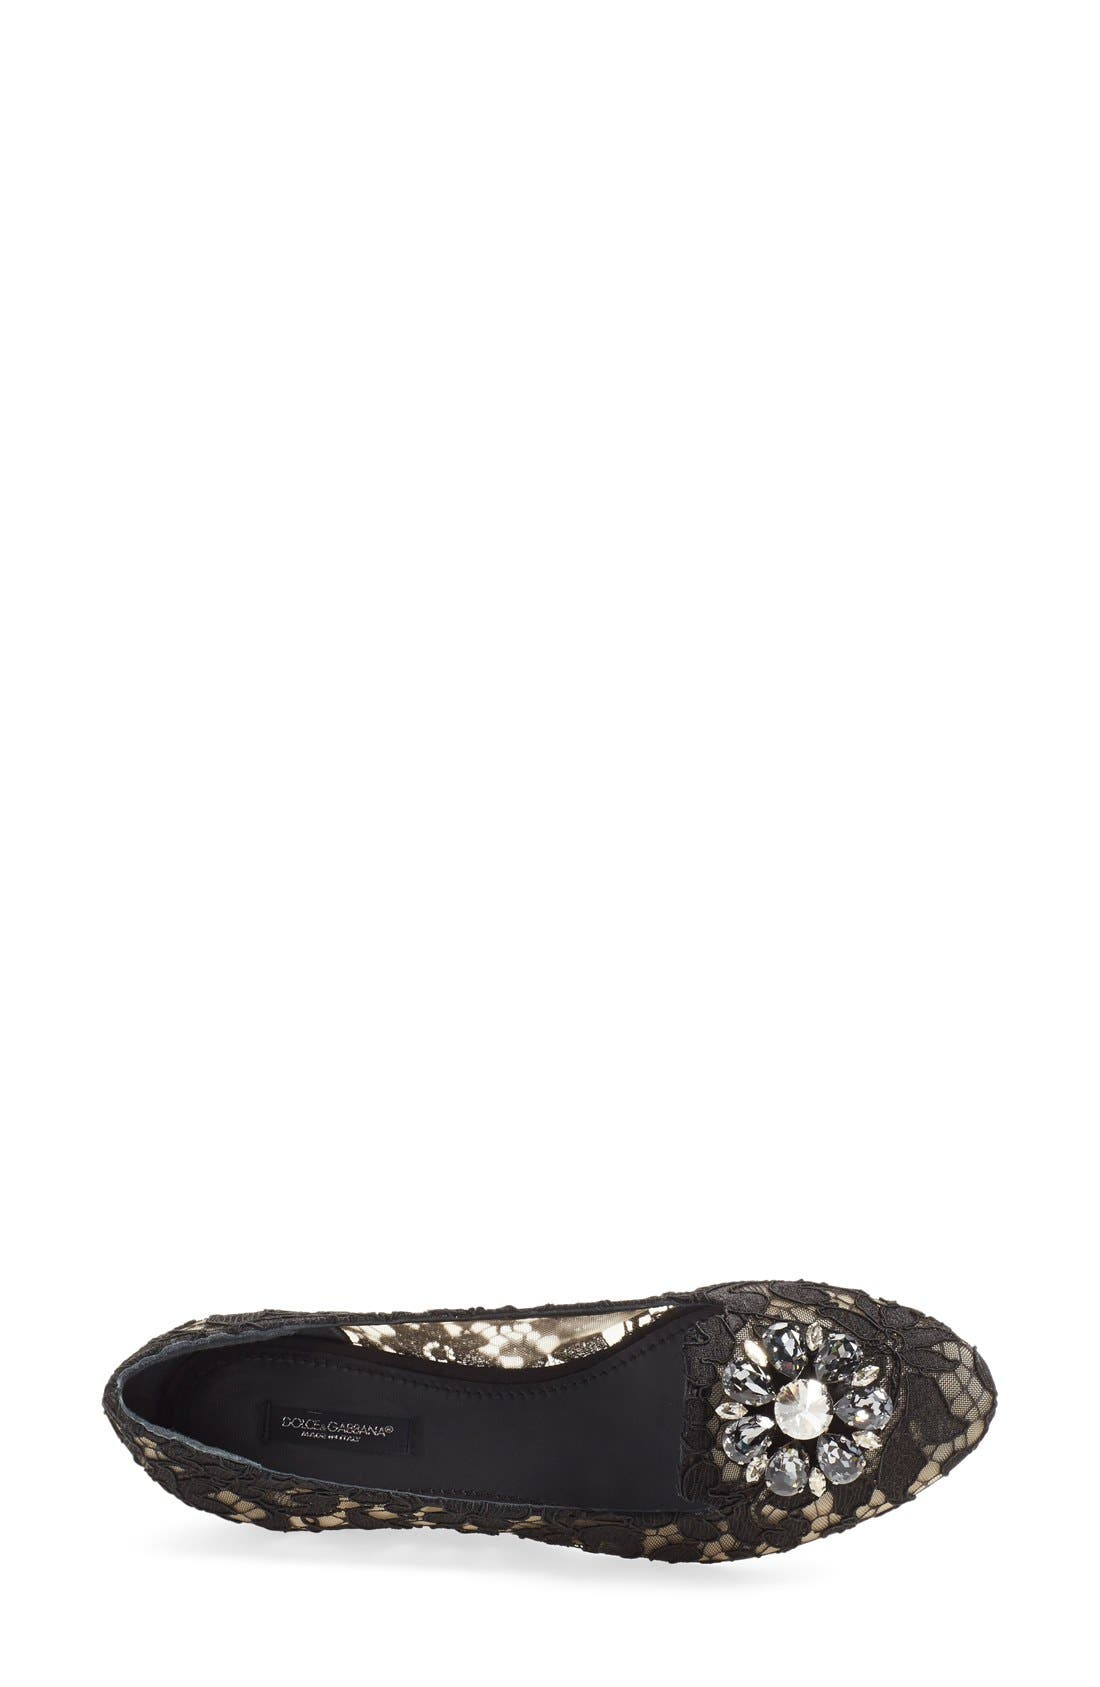 DOLCE&GABBANA, Crystal & Lace Pointy Toe Flat, Alternate thumbnail 2, color, 001